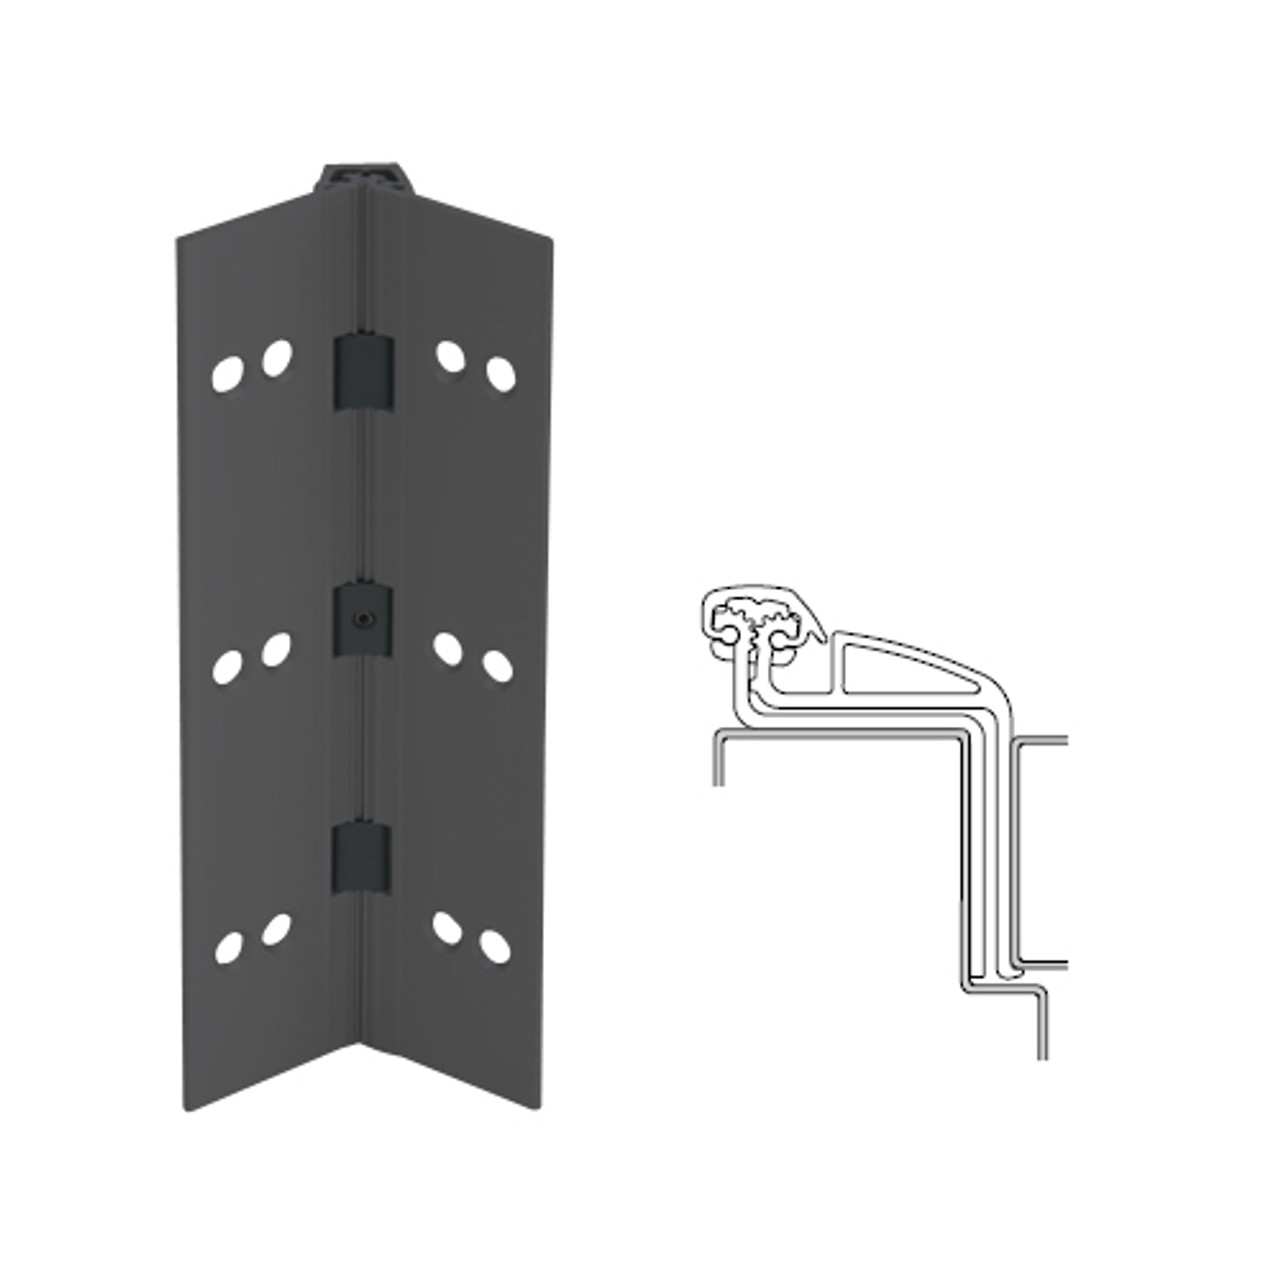 041XY-315AN-83-TFWD IVES Full Mortise Continuous Geared Hinges with Thread Forming Screws in Anodized Black